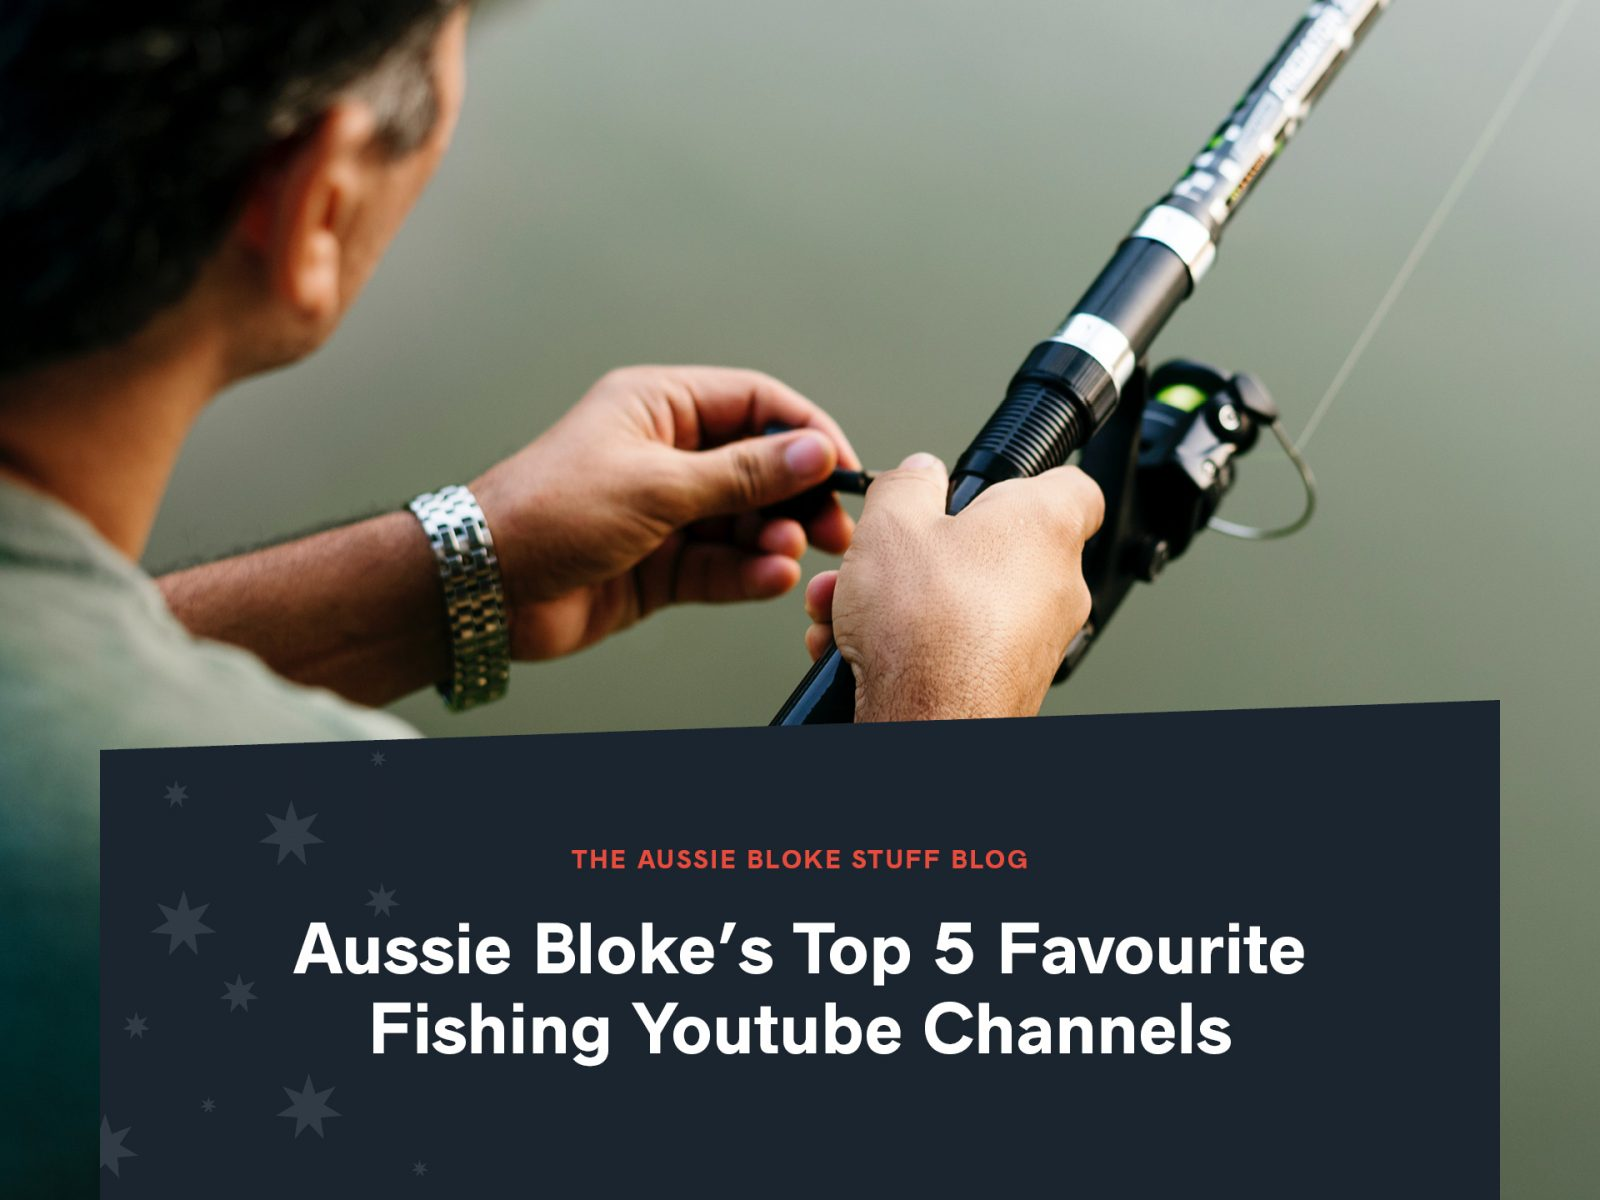 Aussie Blokes Top 5 Favourite Fishing Youtube Channels